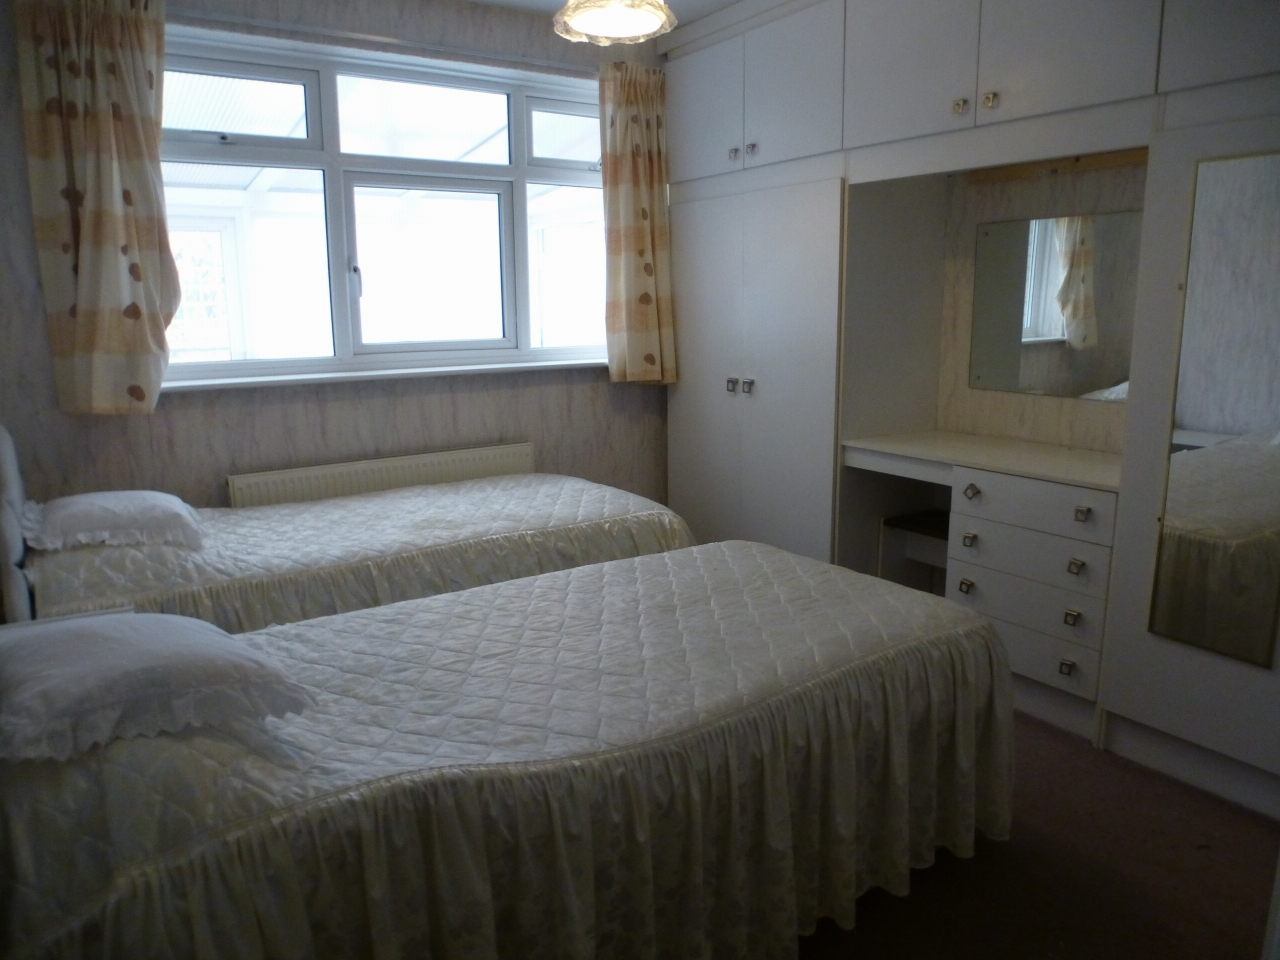 Image 1 of 1 of BEDROOM 2, on Accommodation Comprising for